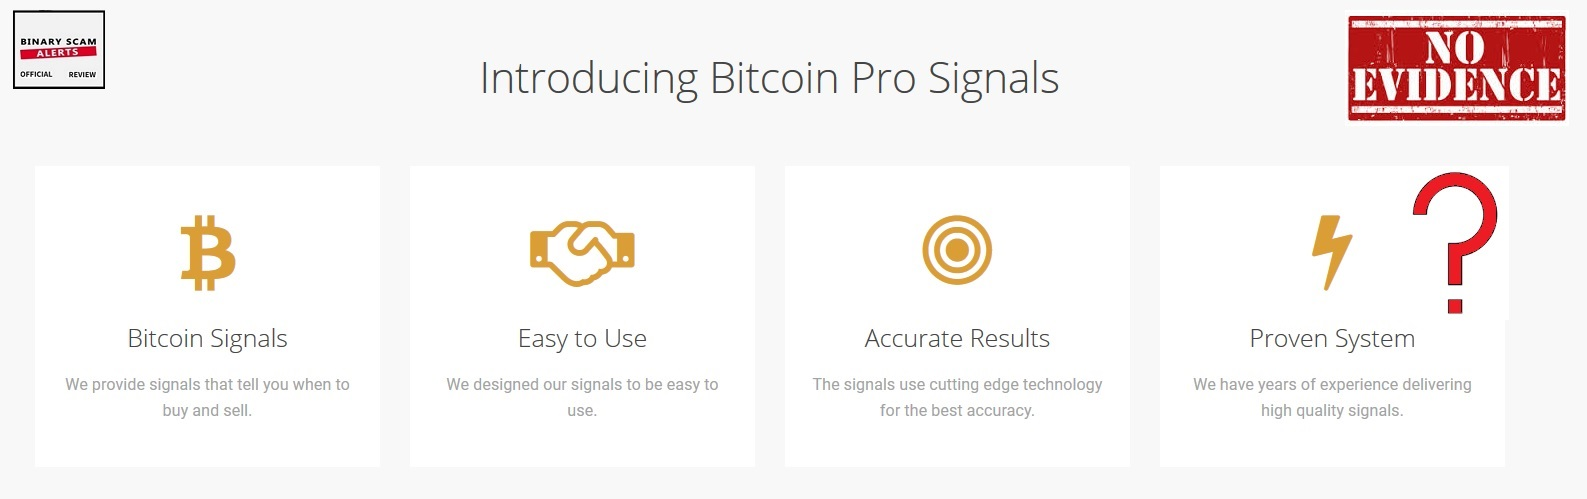 Bitcoin Pro Signals Review, SCAM Bitcoin Pro Signals Blacklisted! | Binary Scam Alerts